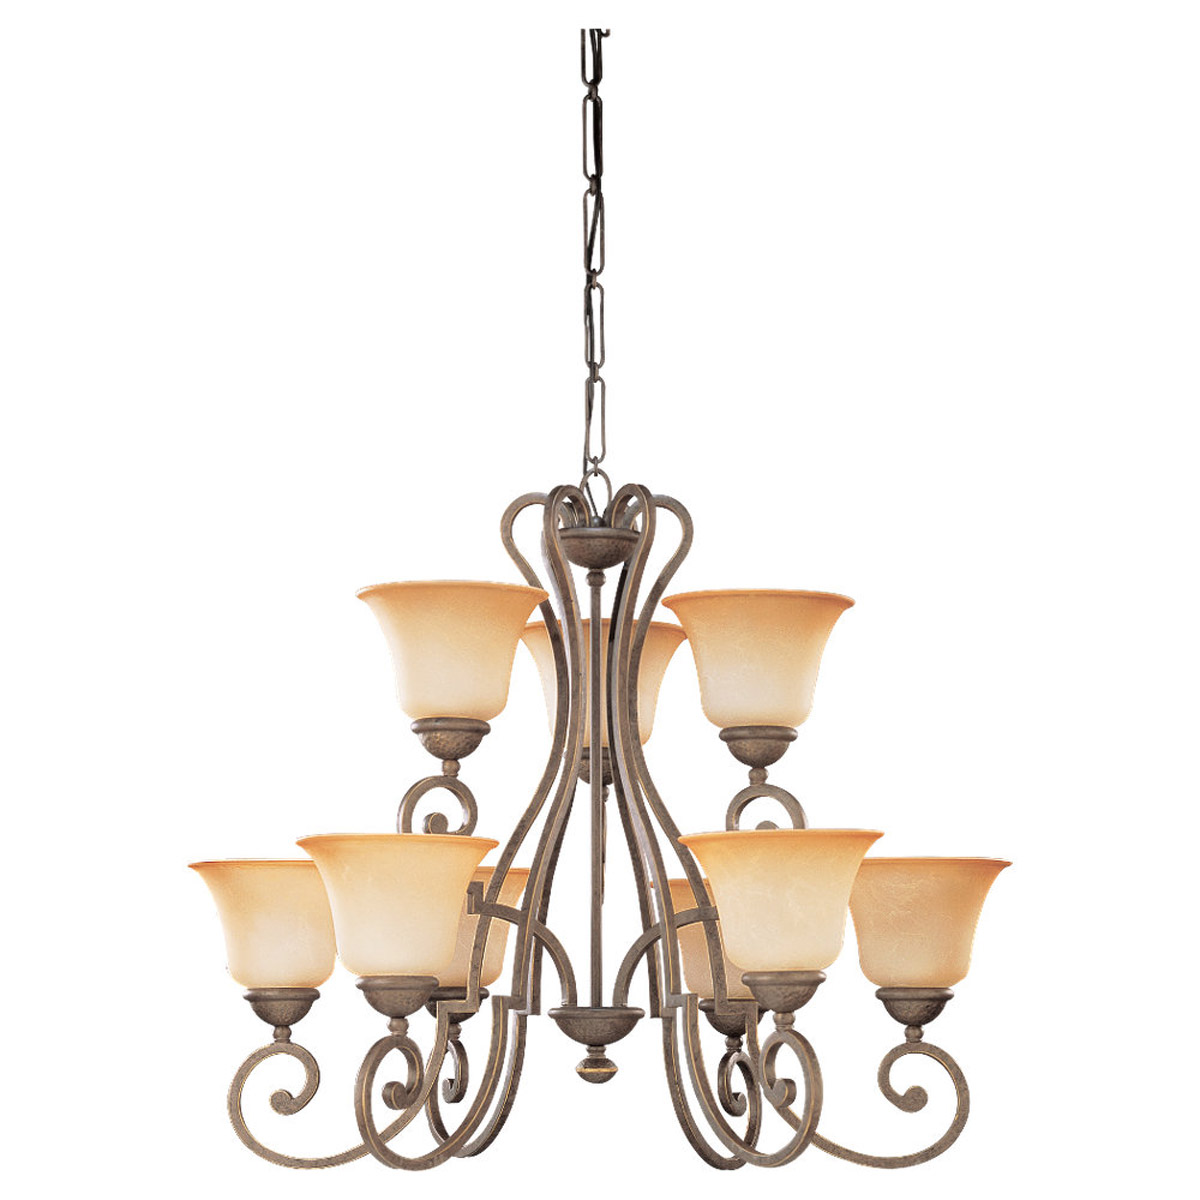 Sea Gull Lighting Brandywine 9 Light Chandelier in Antique Bronze 39033BLE-71 photo